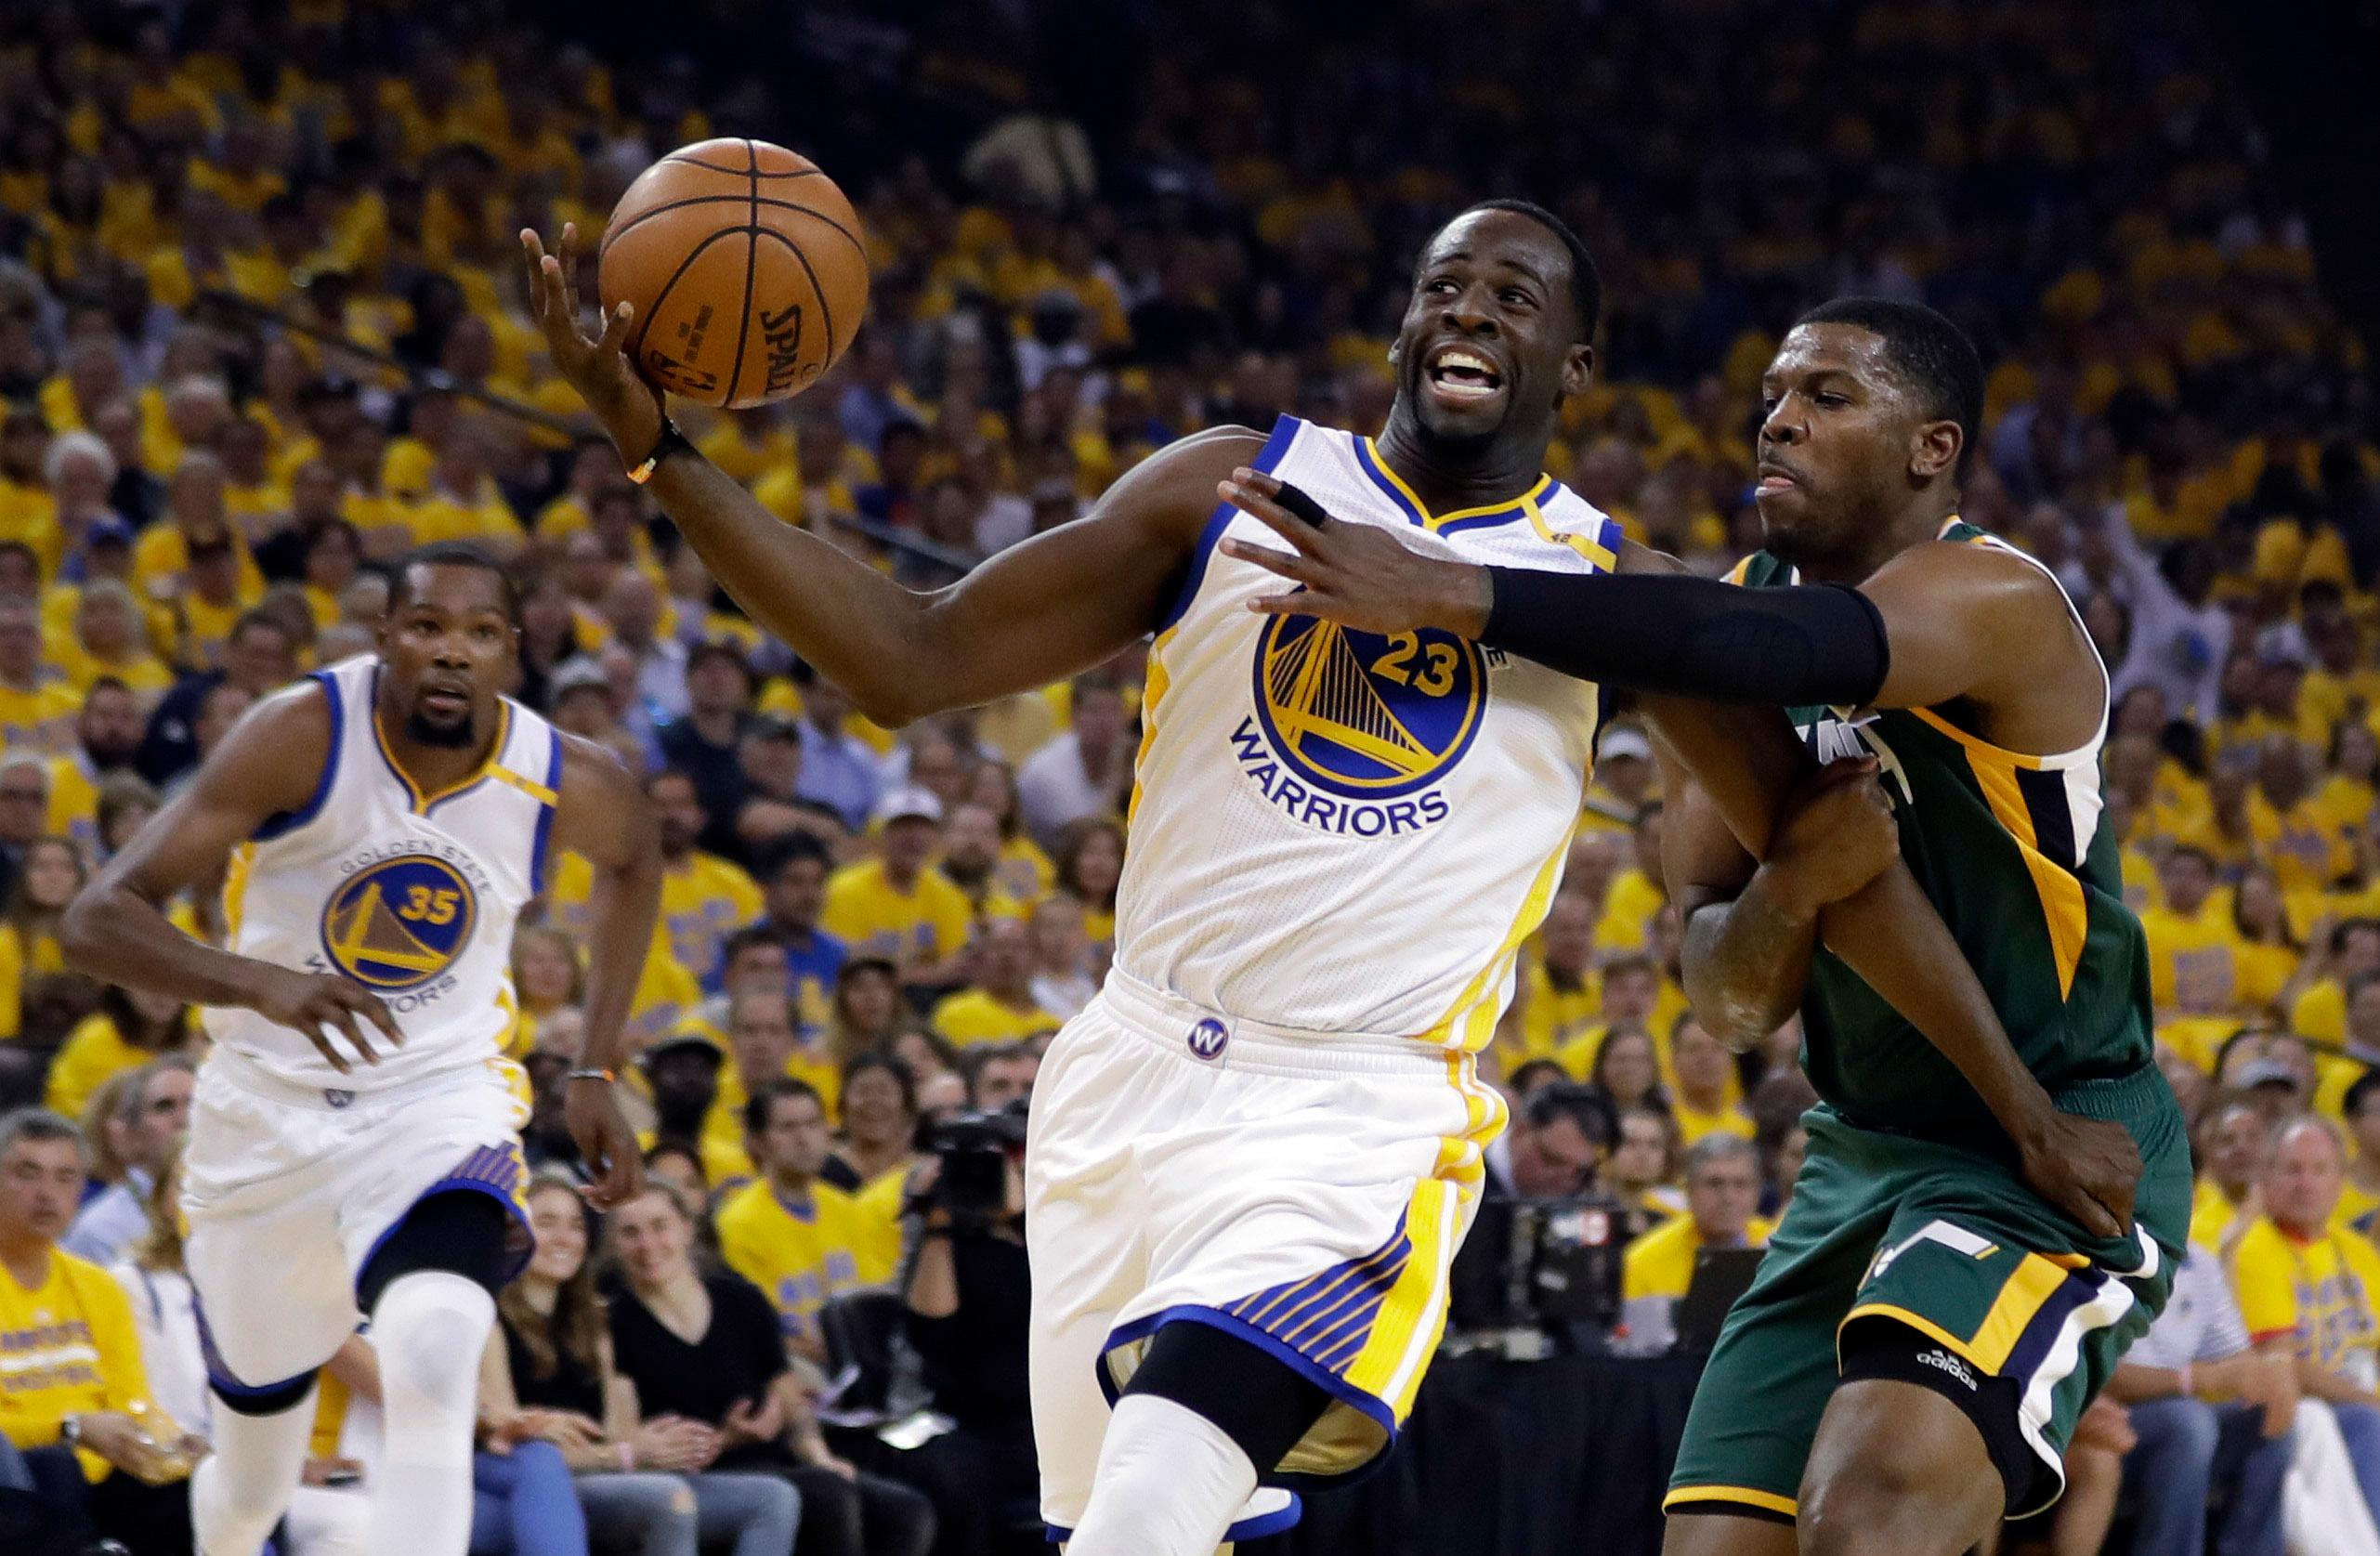 Golden State Warriors forward Draymond Green (23) is fouled by Utah Jazz forward Joe Johnson, right, during the first half in Game 1 of an NBA basketball second-round playoff series, Tuesday, May 2, 2017, in Oakland, Calif. (AP Photo/Marcio Jose Sanchez)